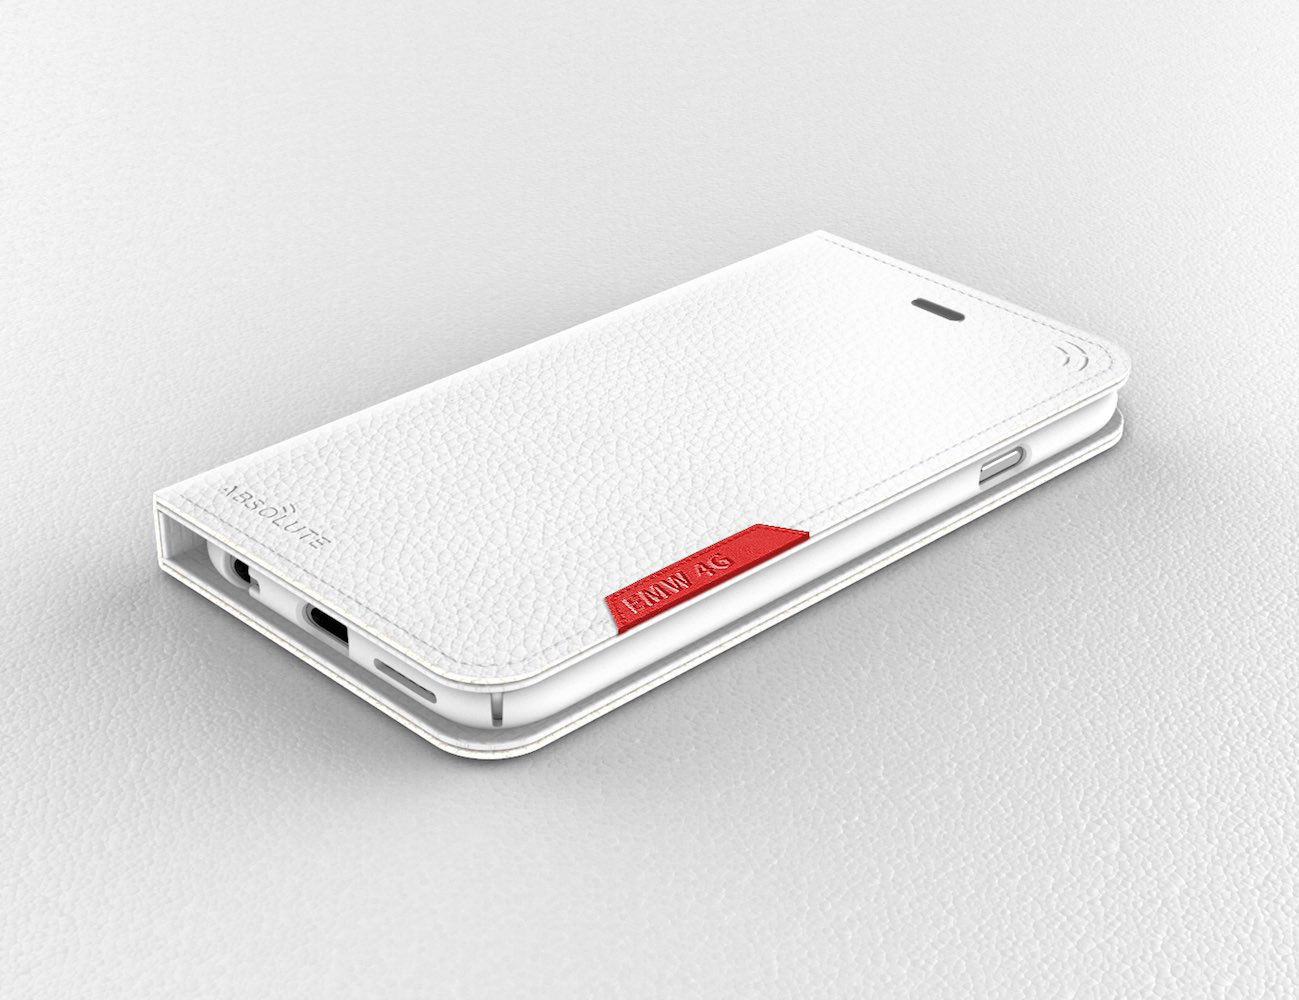 LINKBOOK PRO – LTE Signal Booster Case